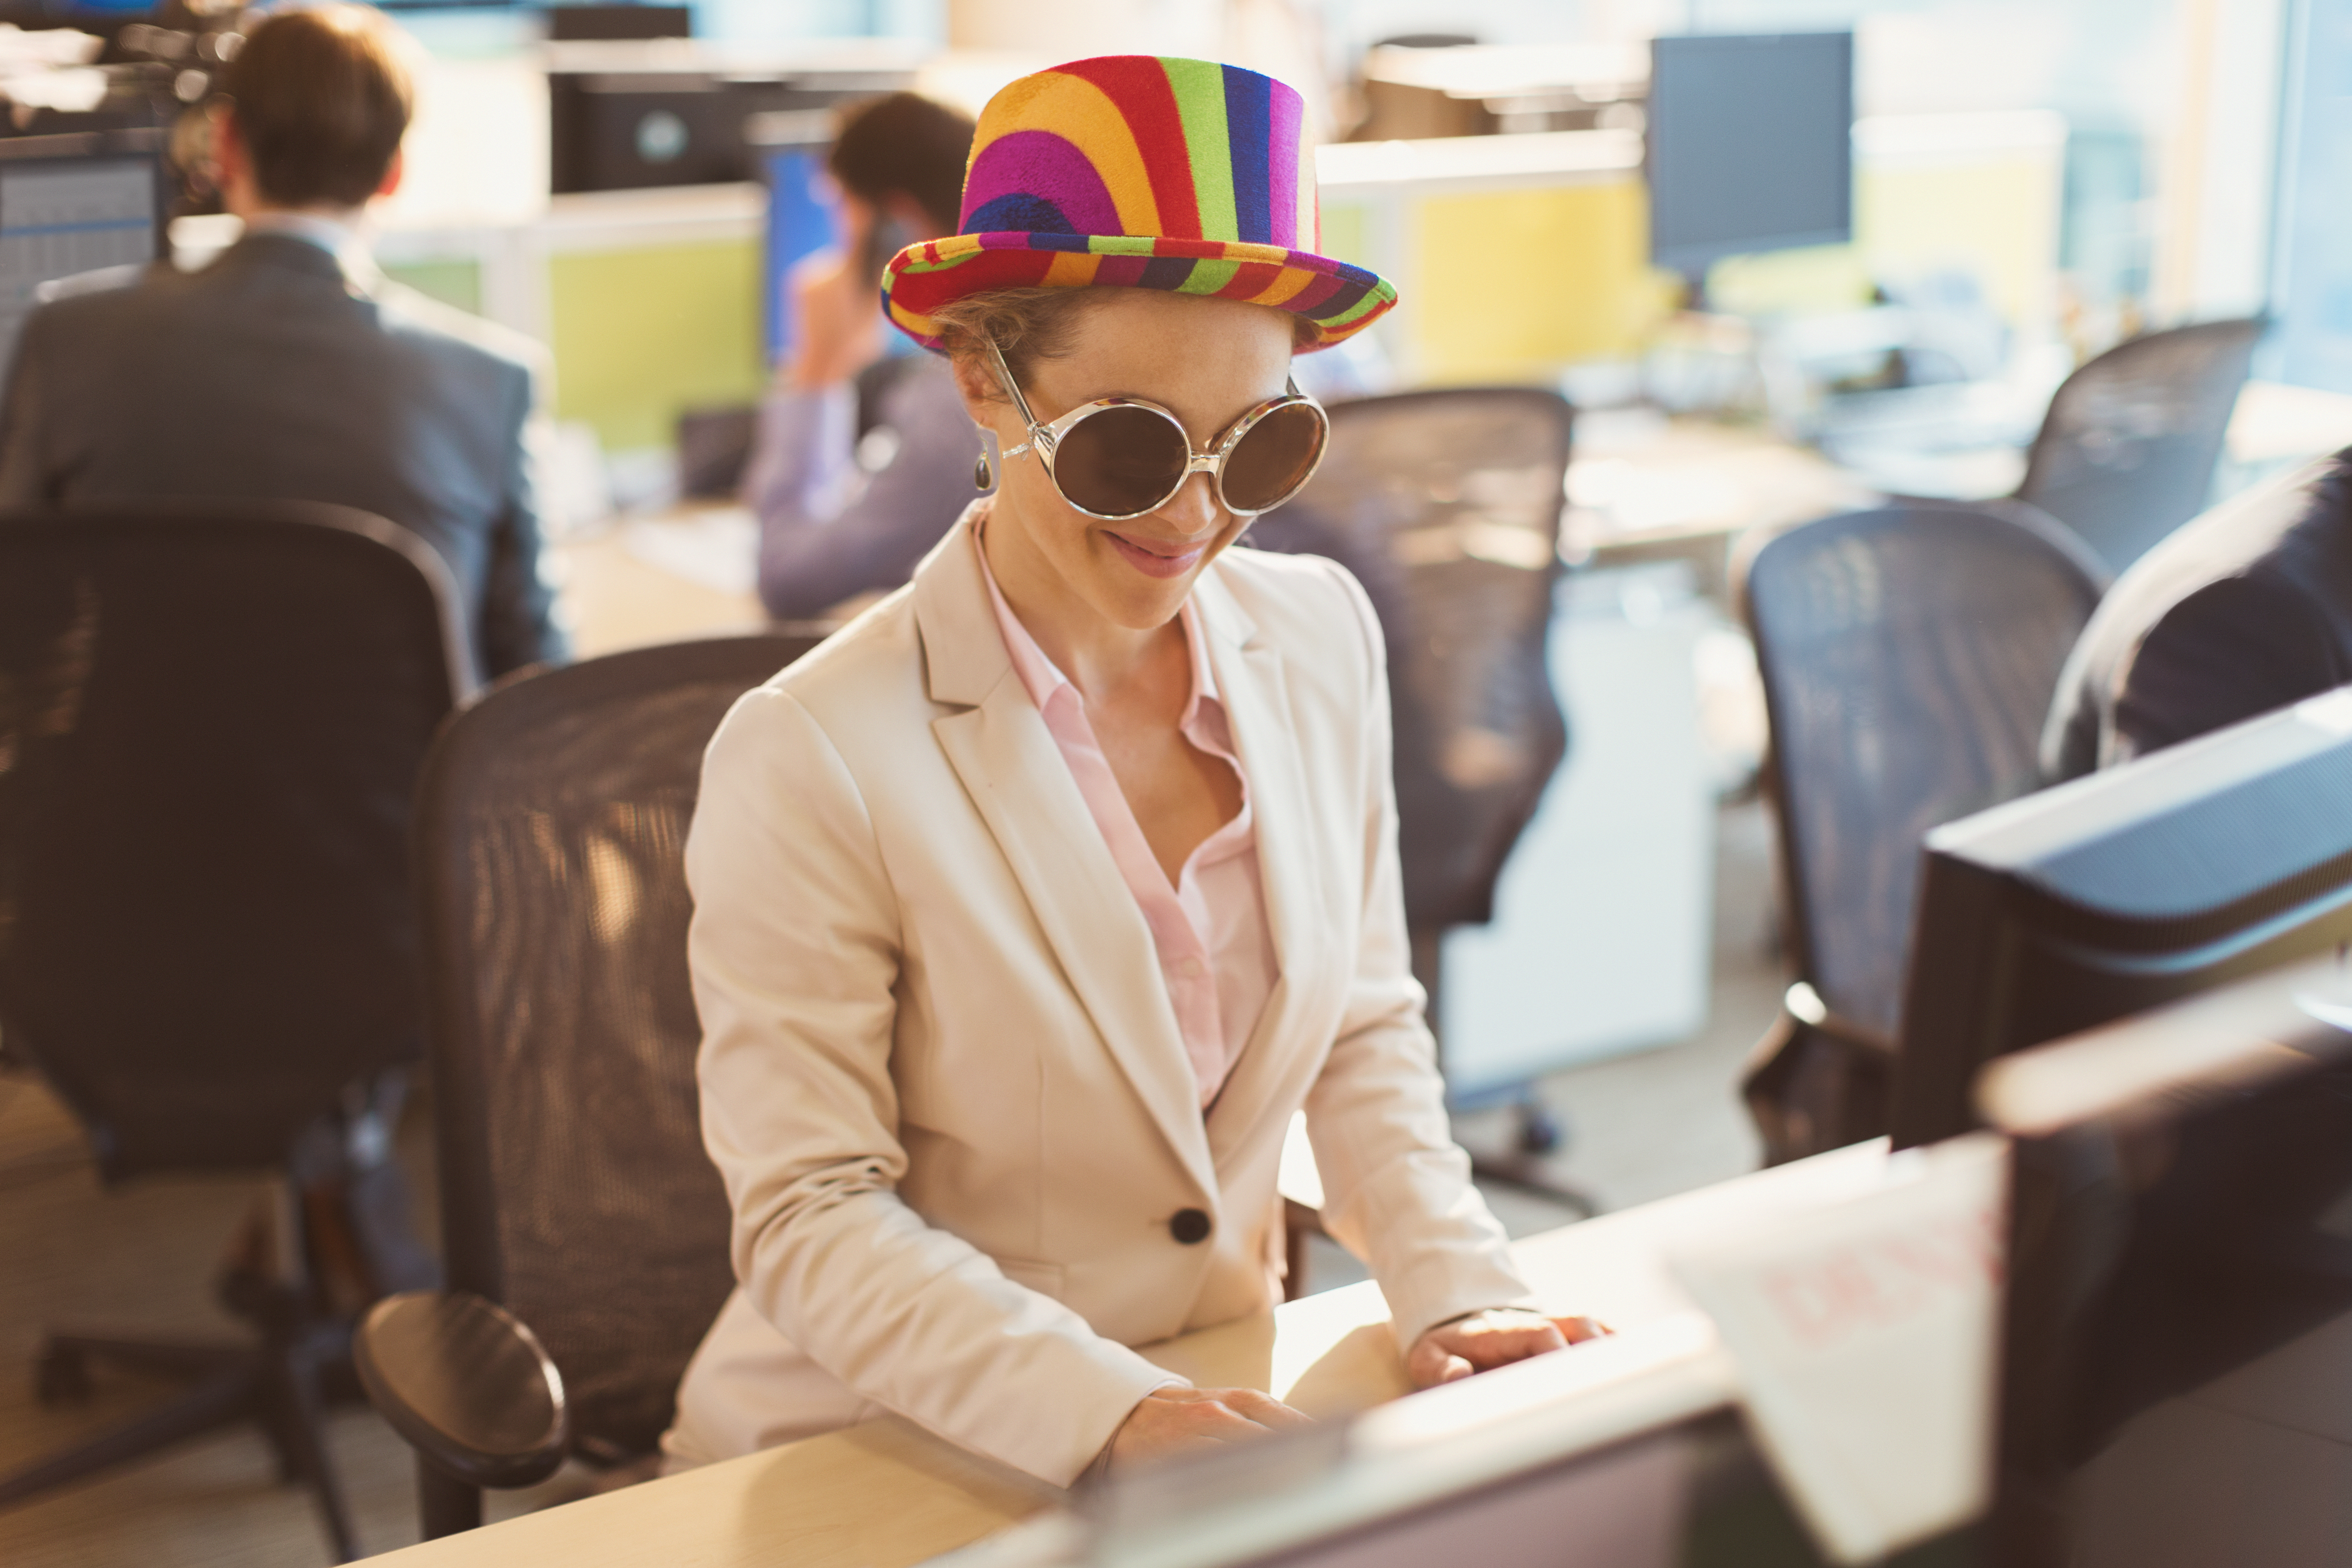 Playful businesswoman wearing silly sunglasses and striped hat at computer in office